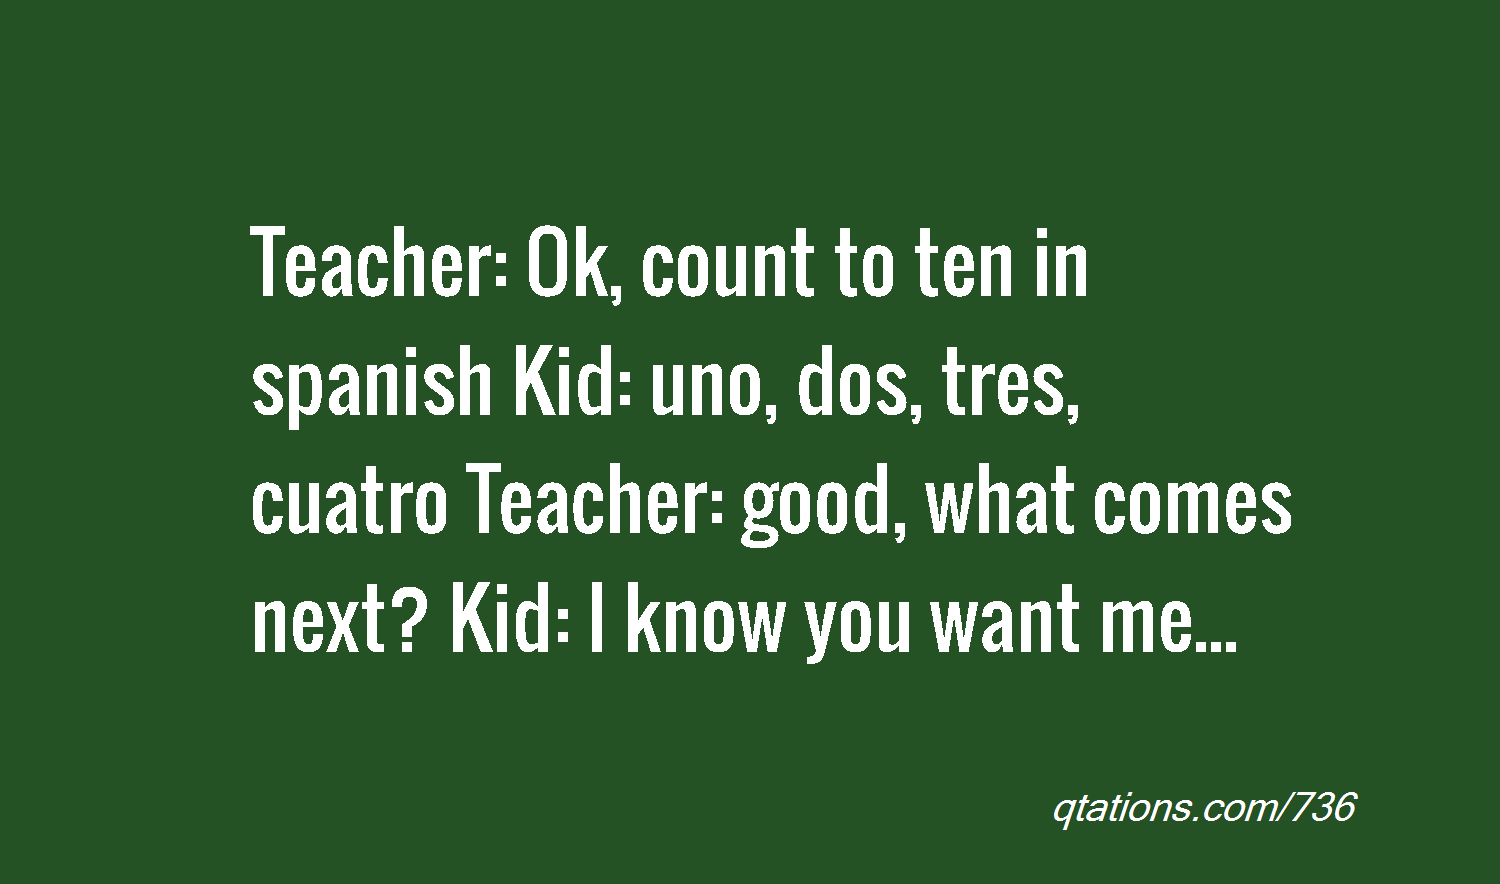 Spanish Explorer Quotes Quotesgram: Spanish Quotes About Education. QuotesGram